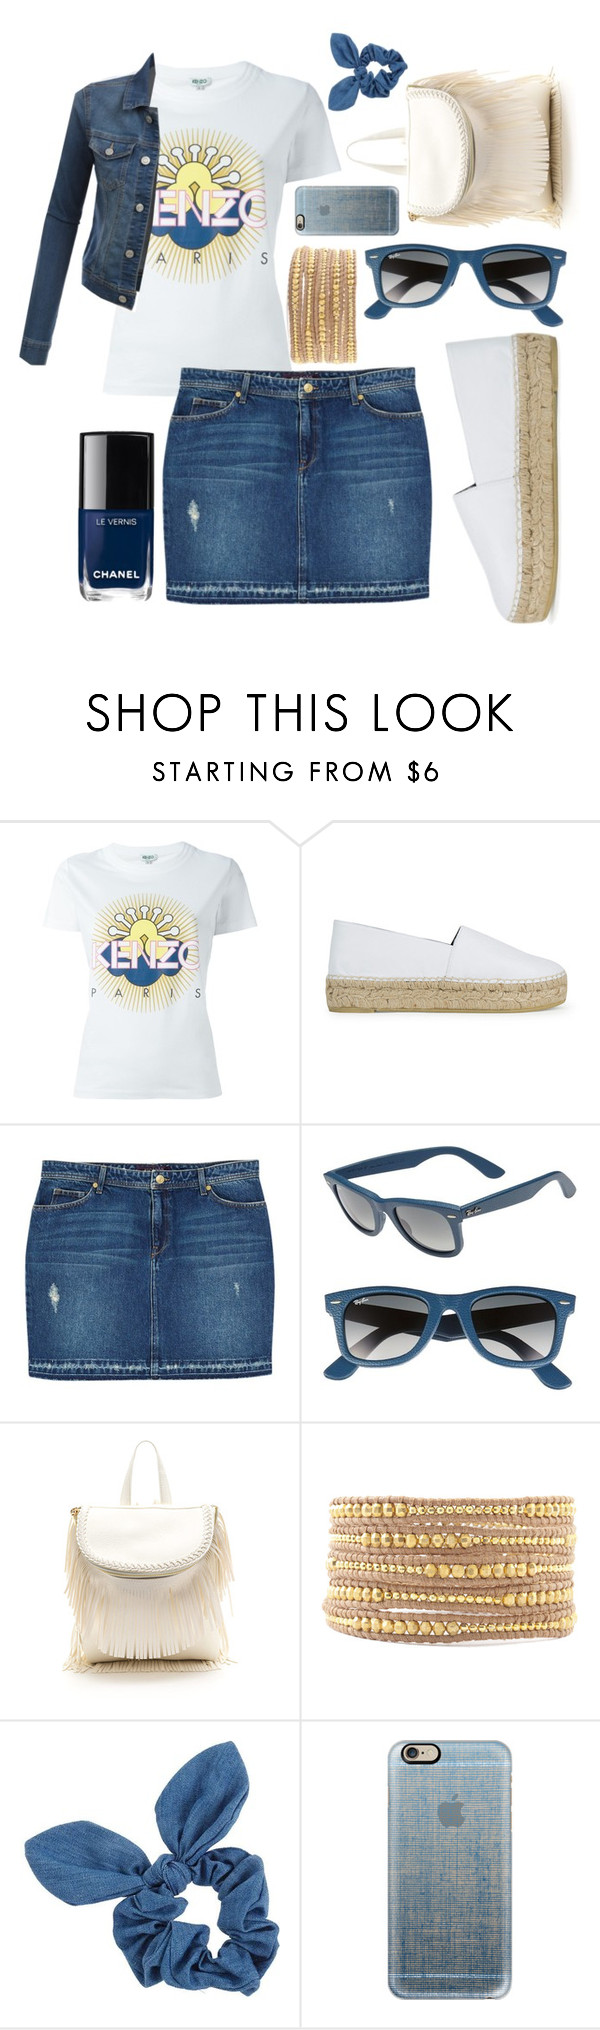 """Sun is up move your body!"" by sanela-enter ❤ liked on Polyvore featuring Kenzo, Violeta by Mango, Ray-Ban, Chan Luu, Chanel, Dorothy Perkins, Casetify and LE3NO"